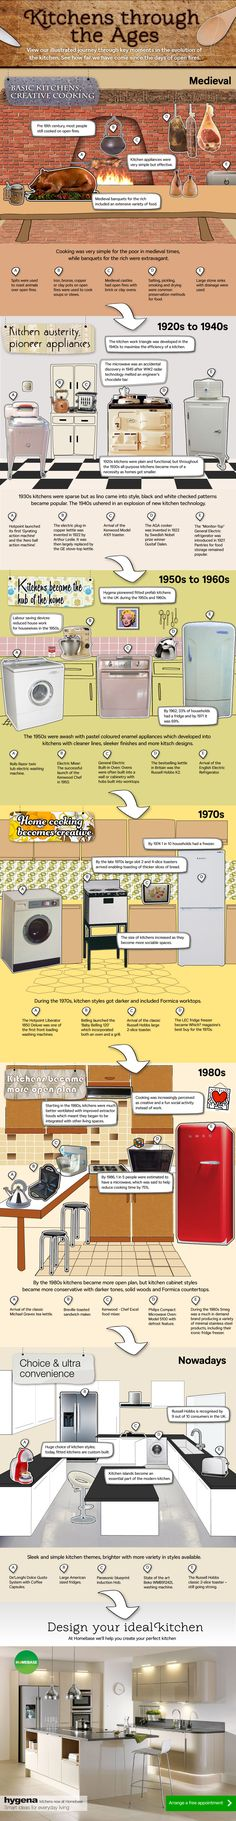 Homebase evolution of the kitchen through the ages infographic